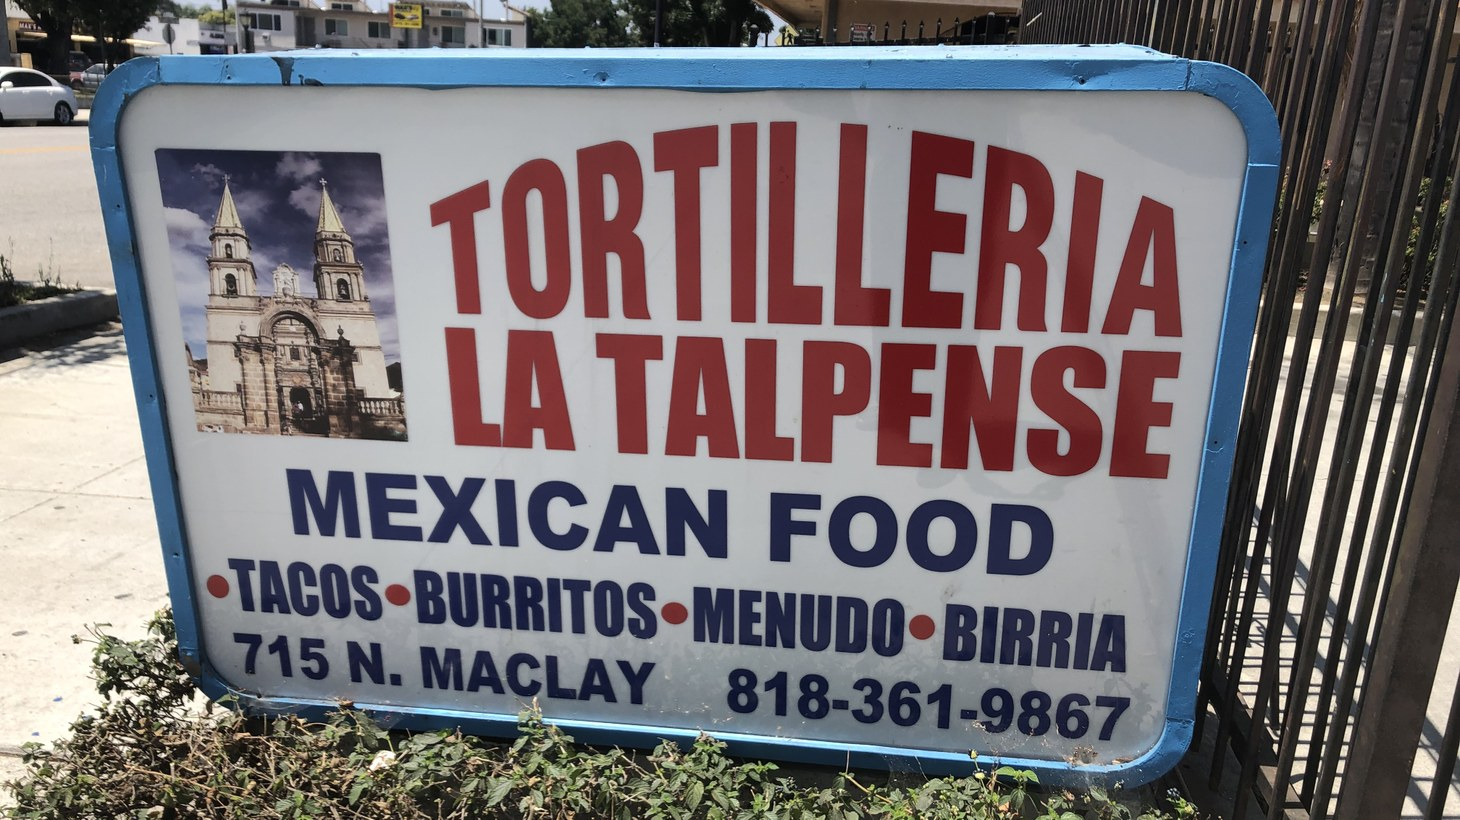 Reppin' the San Fernando Valley with thick, gordita-style yellow corn tortillas. Not a bad marquee, either.